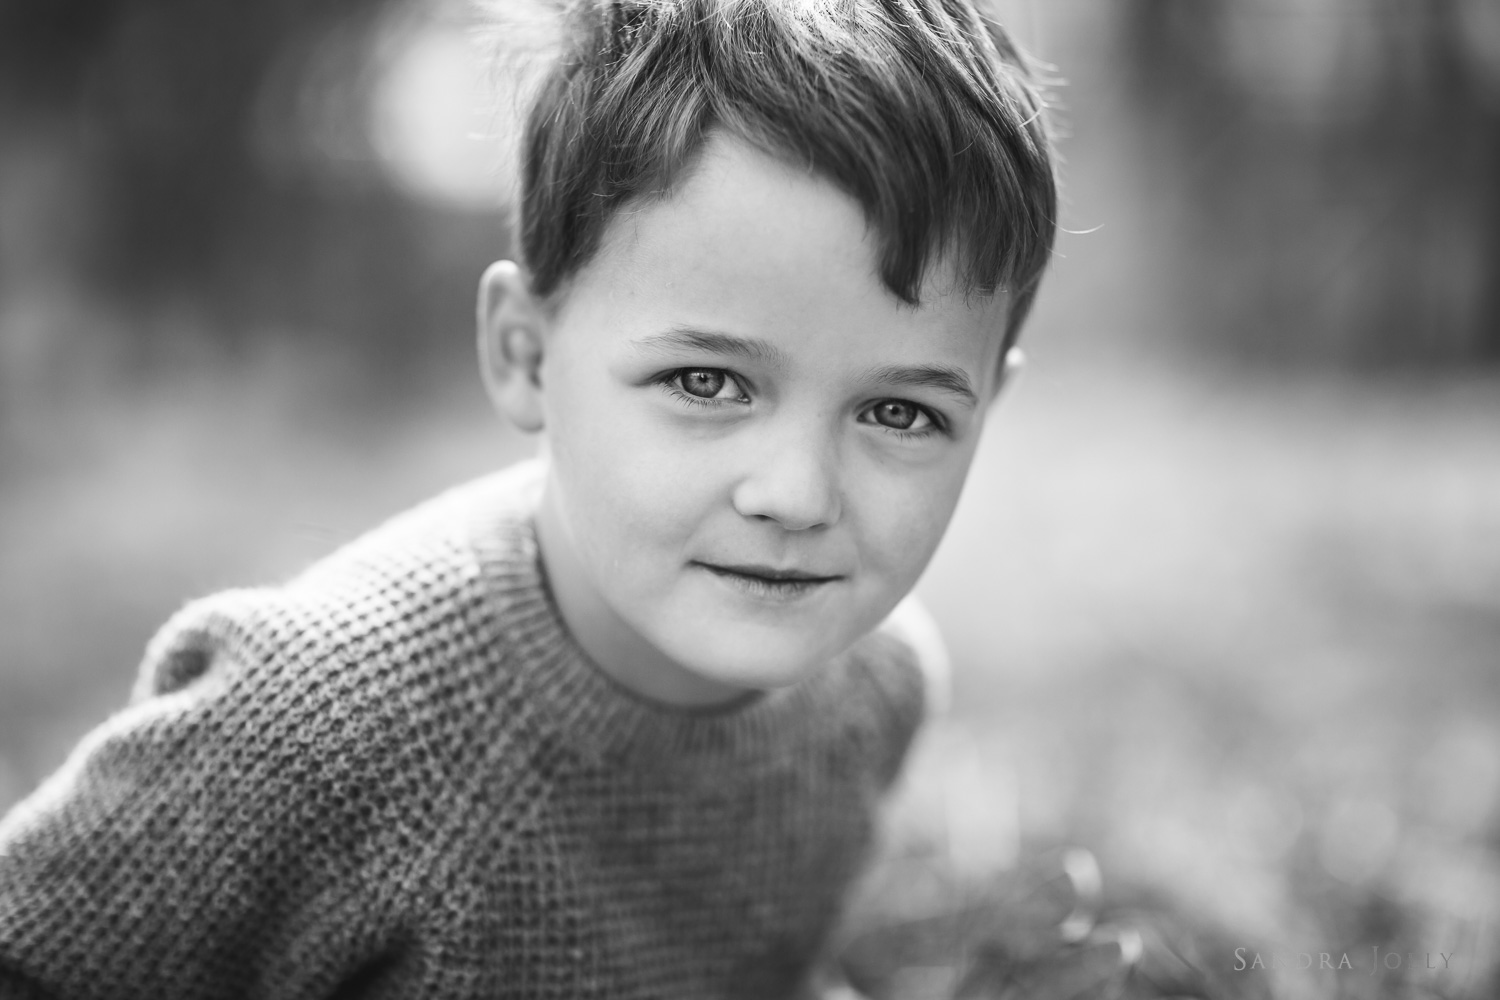 black-and-white-portrait-of-boy-by-sandra-jolly-photography.jpg